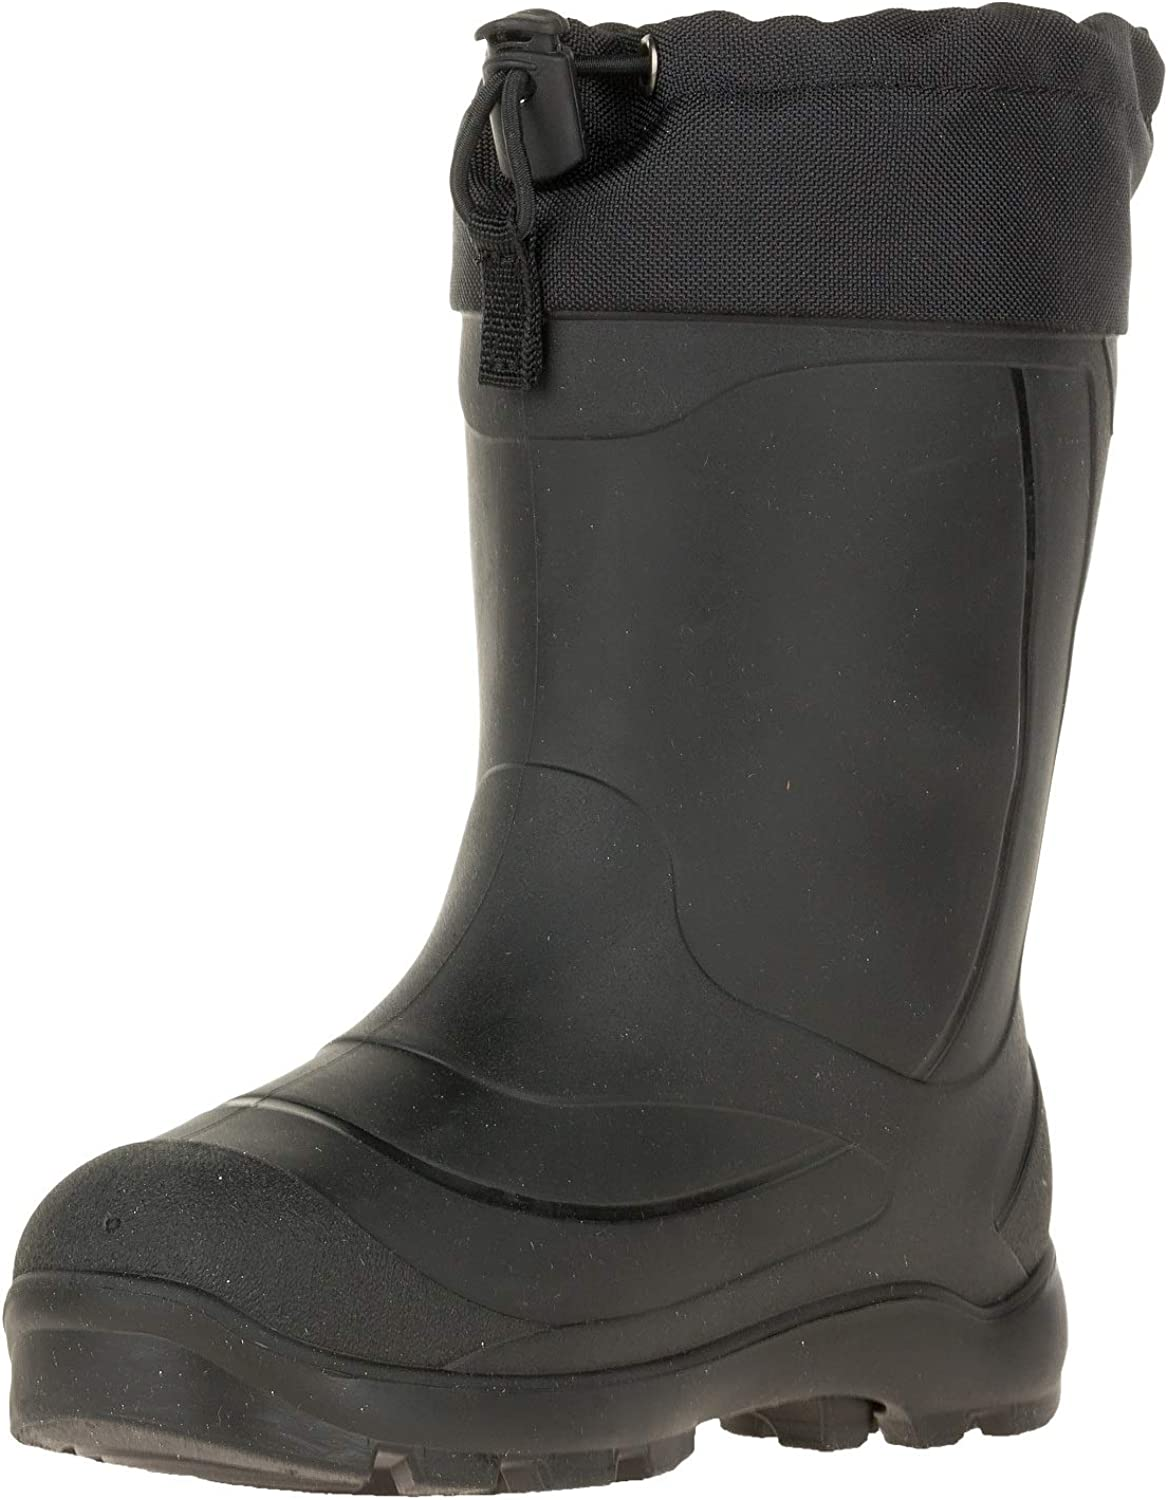 | Kamik Footwear Kids Snobuster1 Insulated Snow Boot (Toddler/Little Kid/Big Kid) | Snow Boots